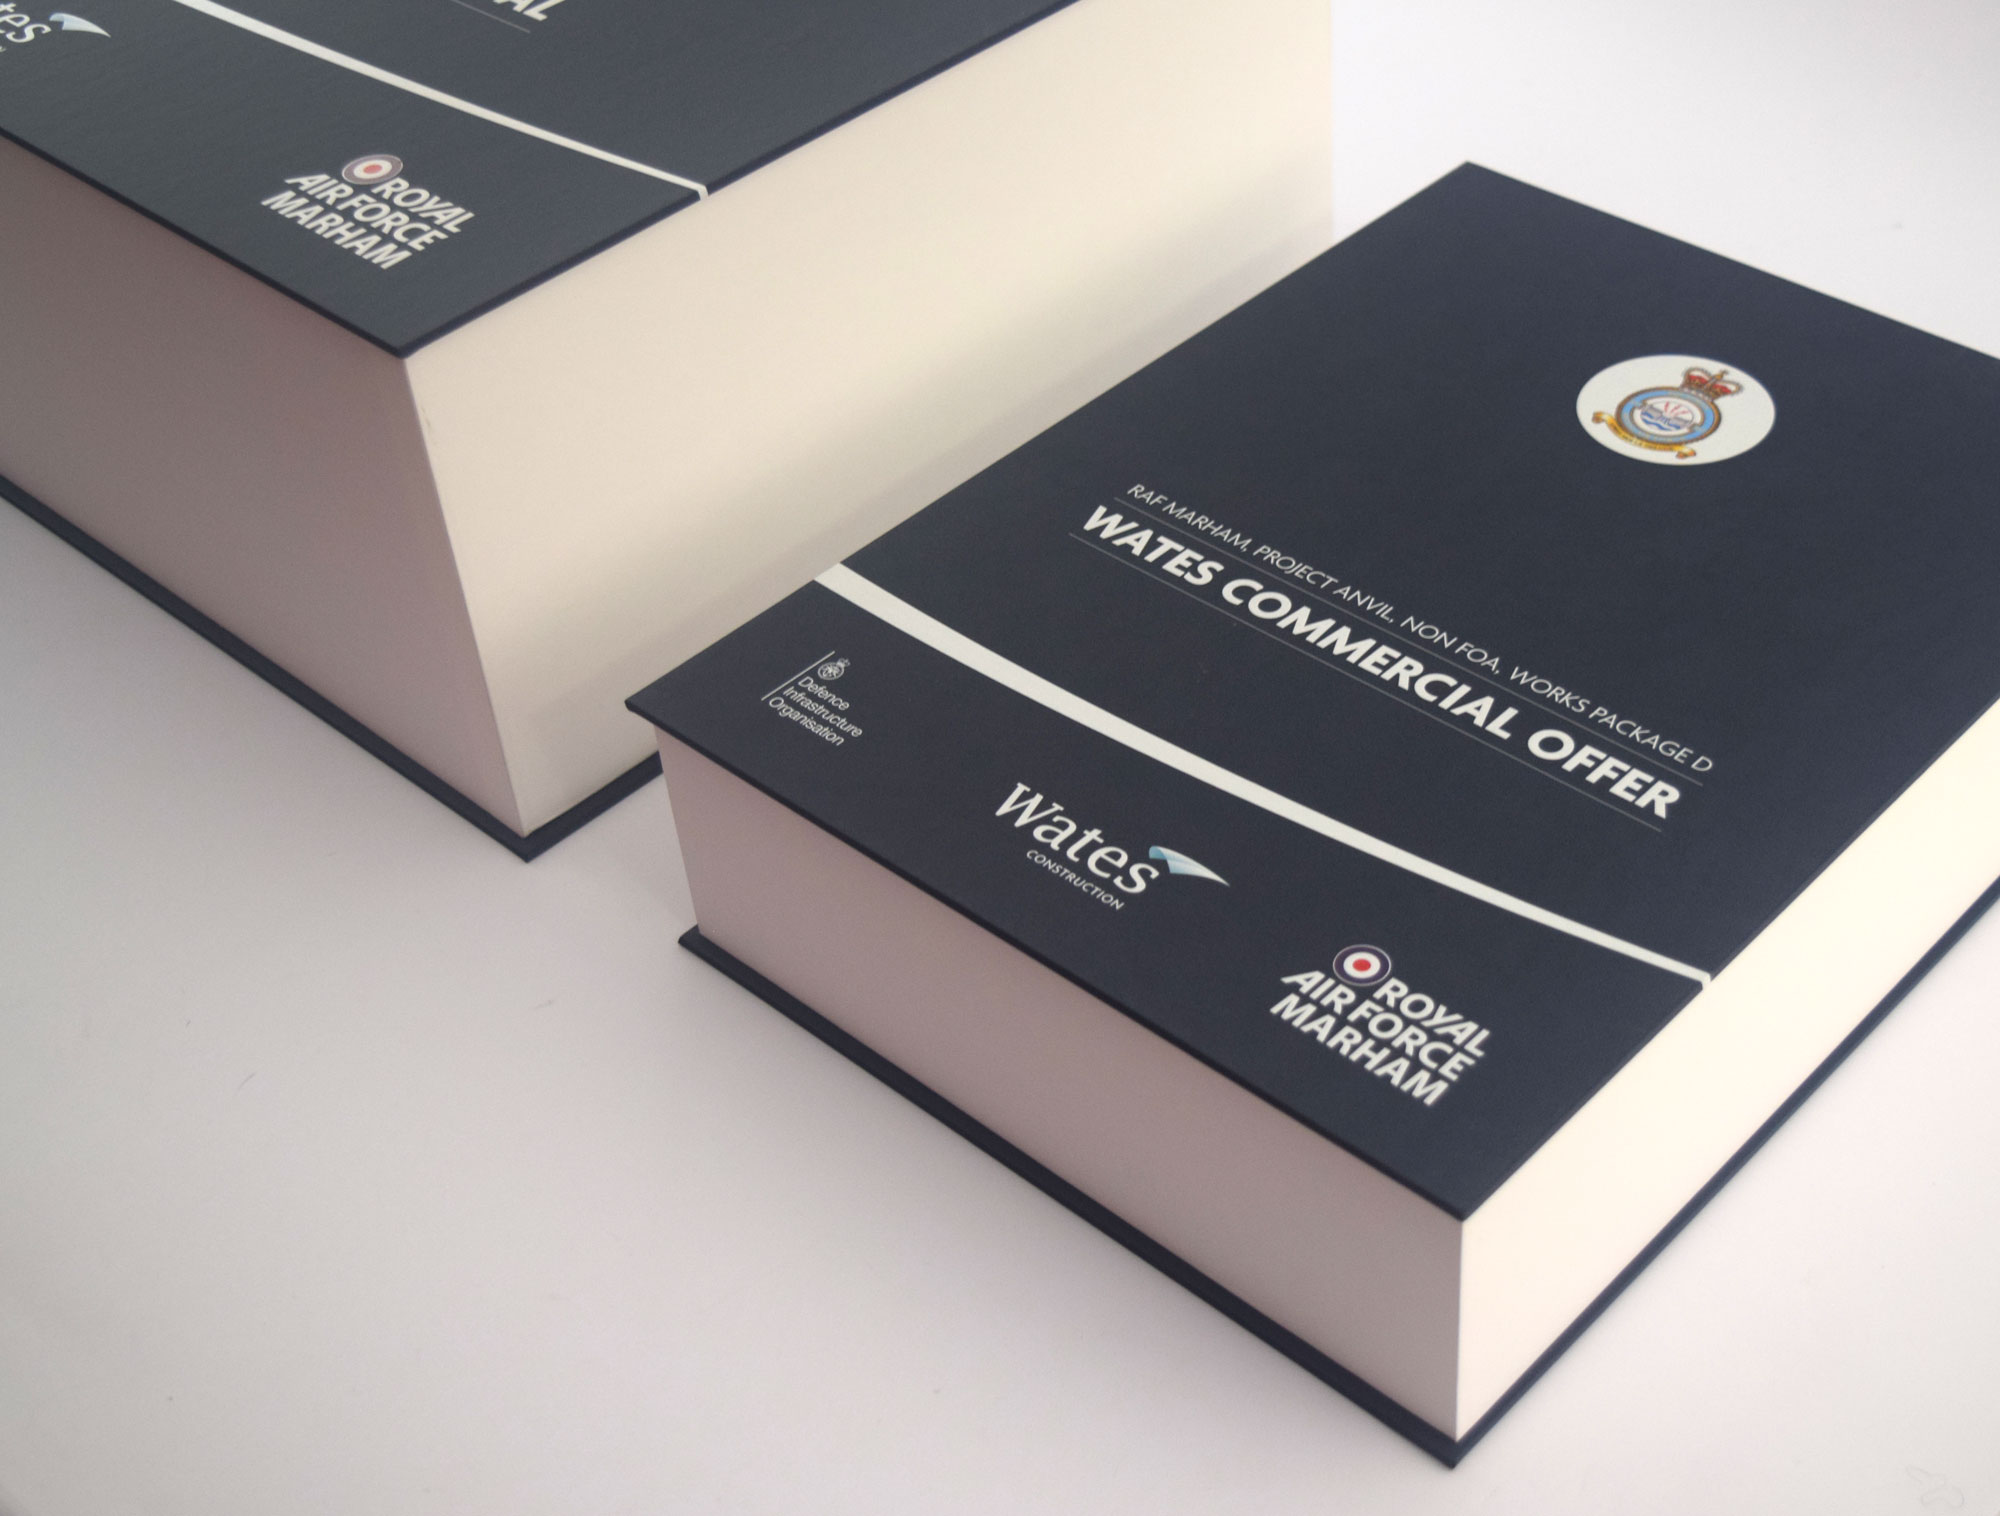 Custom made Tender Submission Boxes